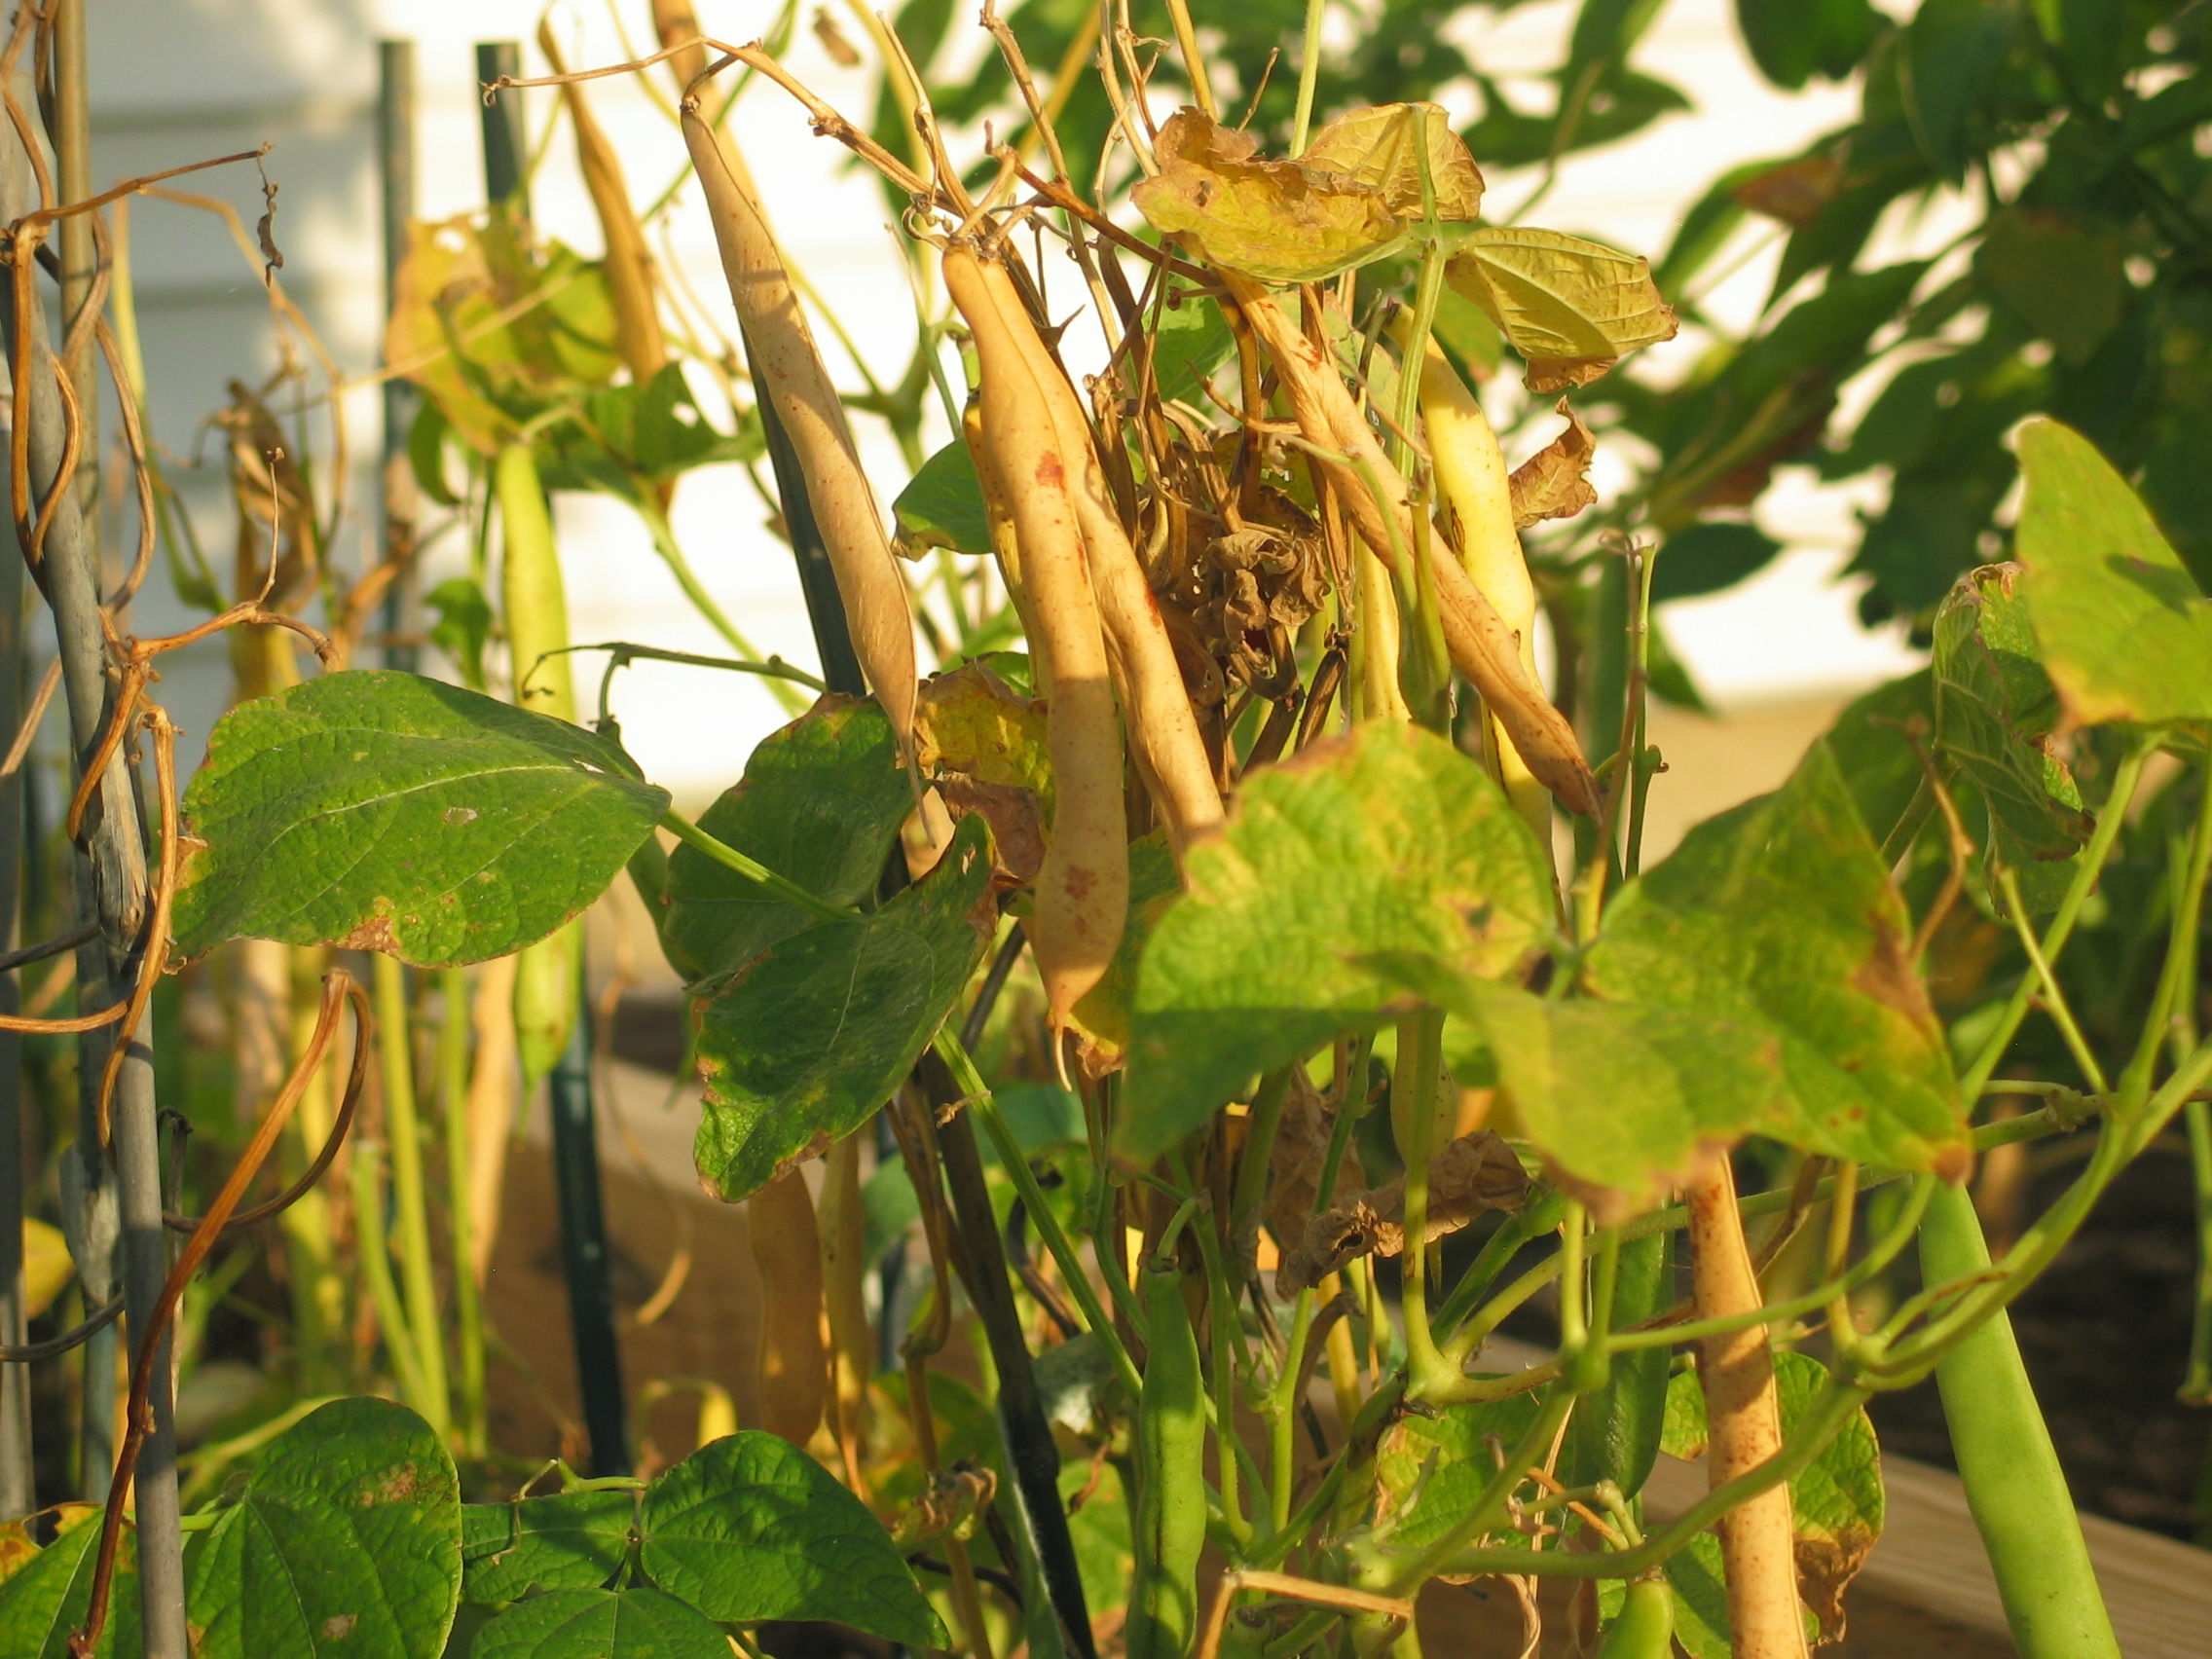 image of pods drying on dying soldier bean plants